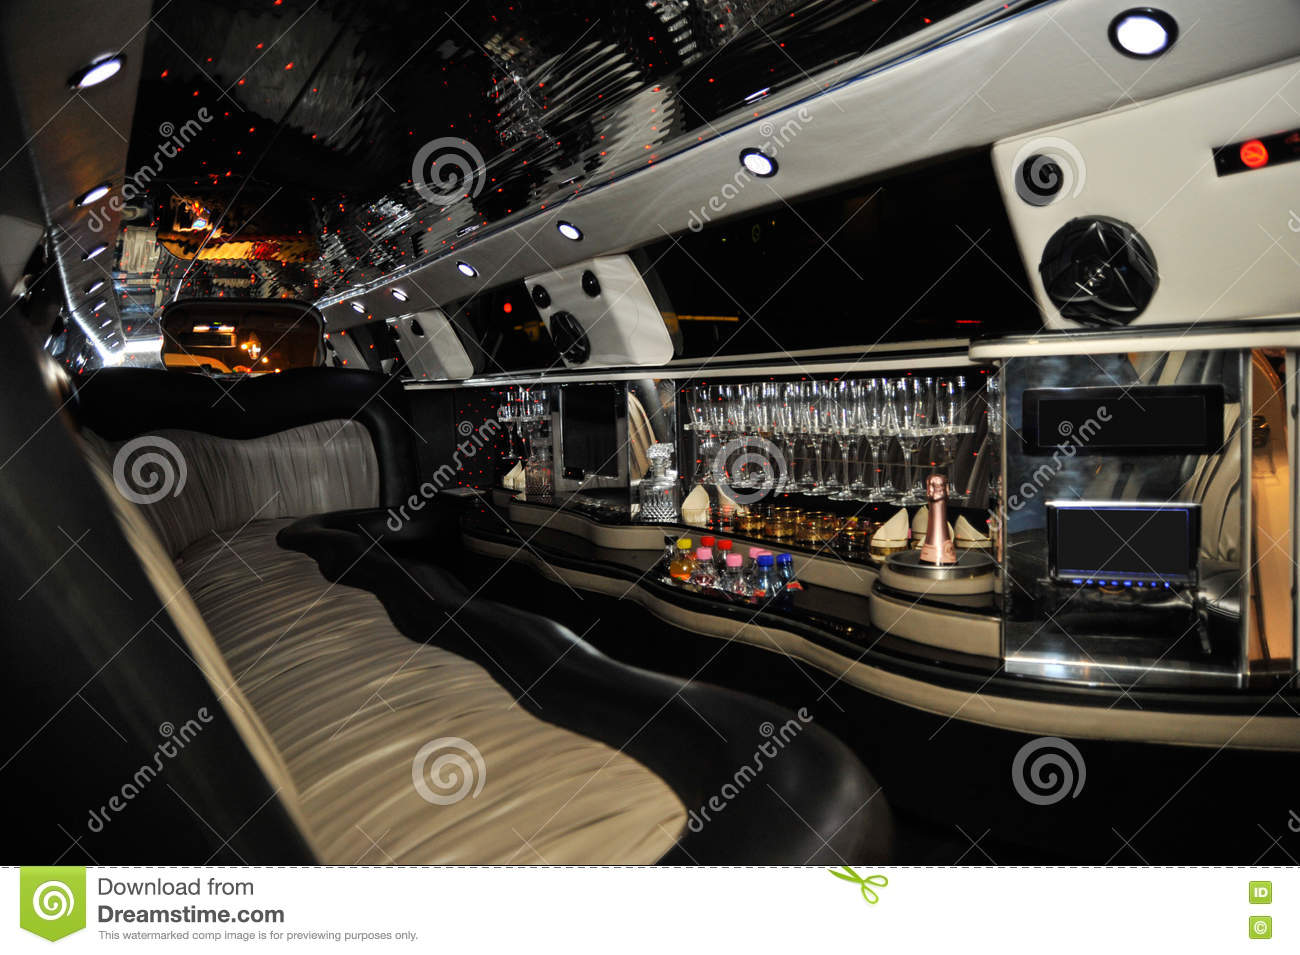 Int rieur de voiture de limousine photo stock image for Interieur de voiture de luxe